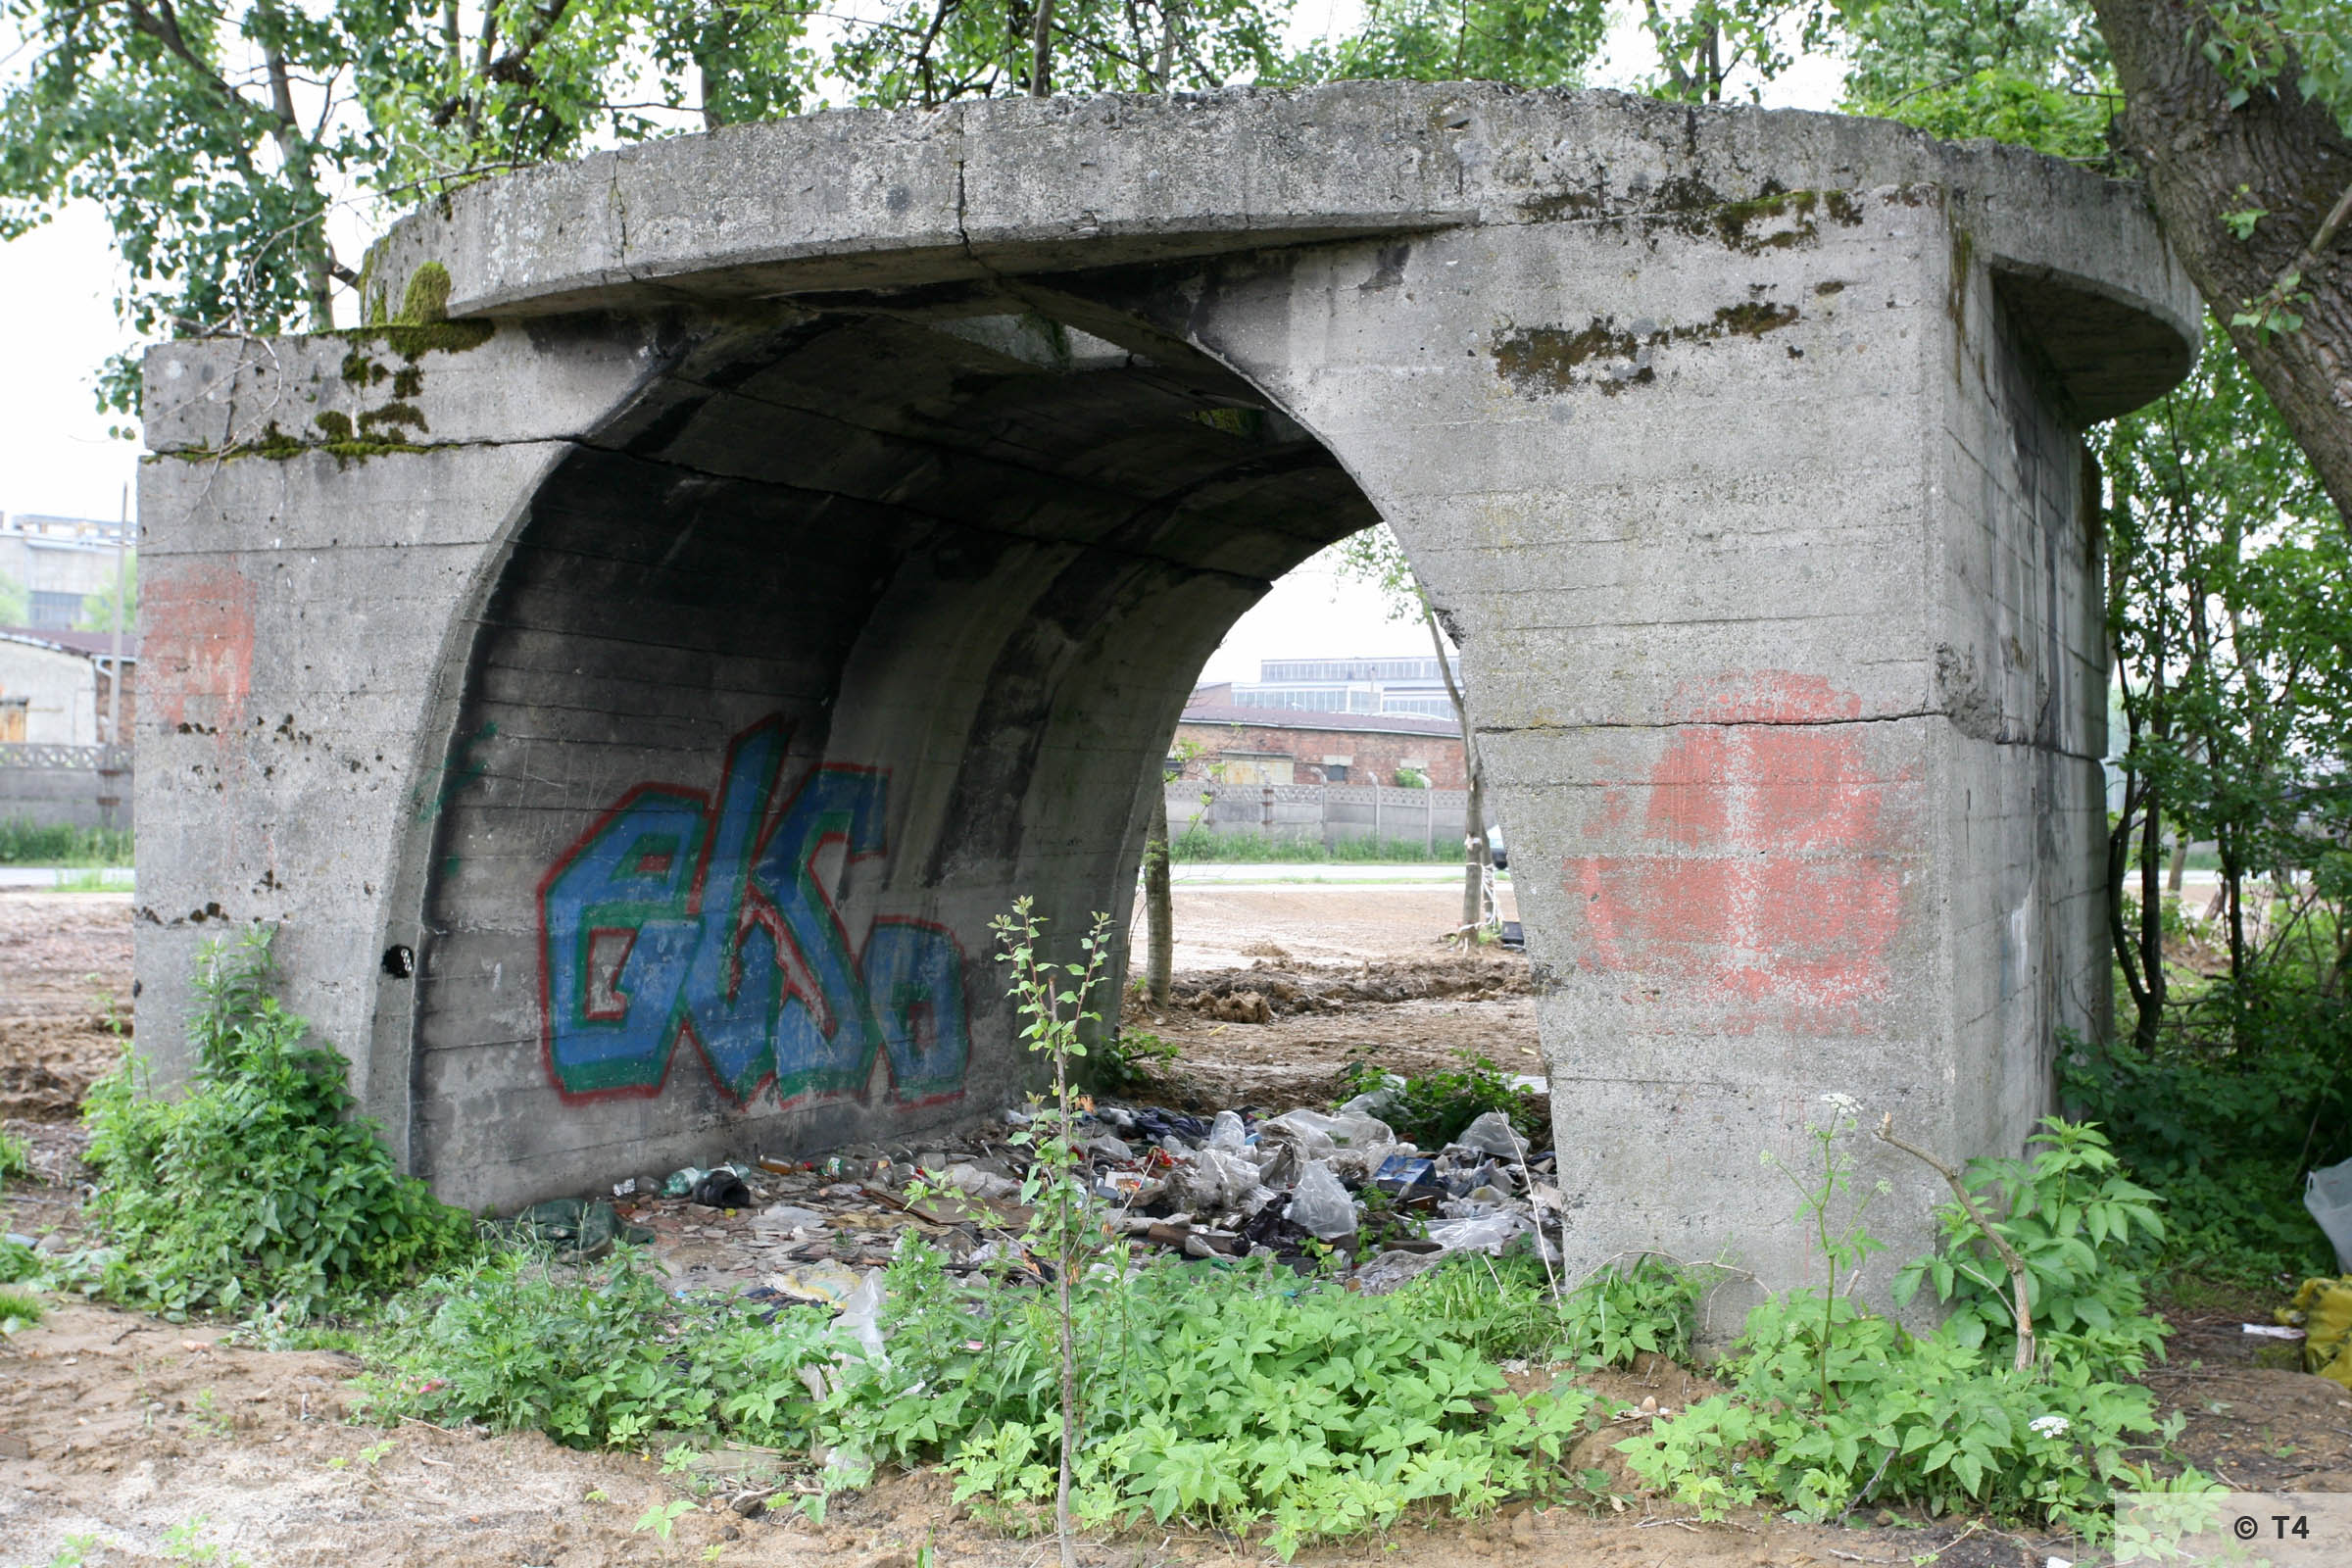 Remnants of concrete structure along ul Fabryczna. 2006 T4 4880